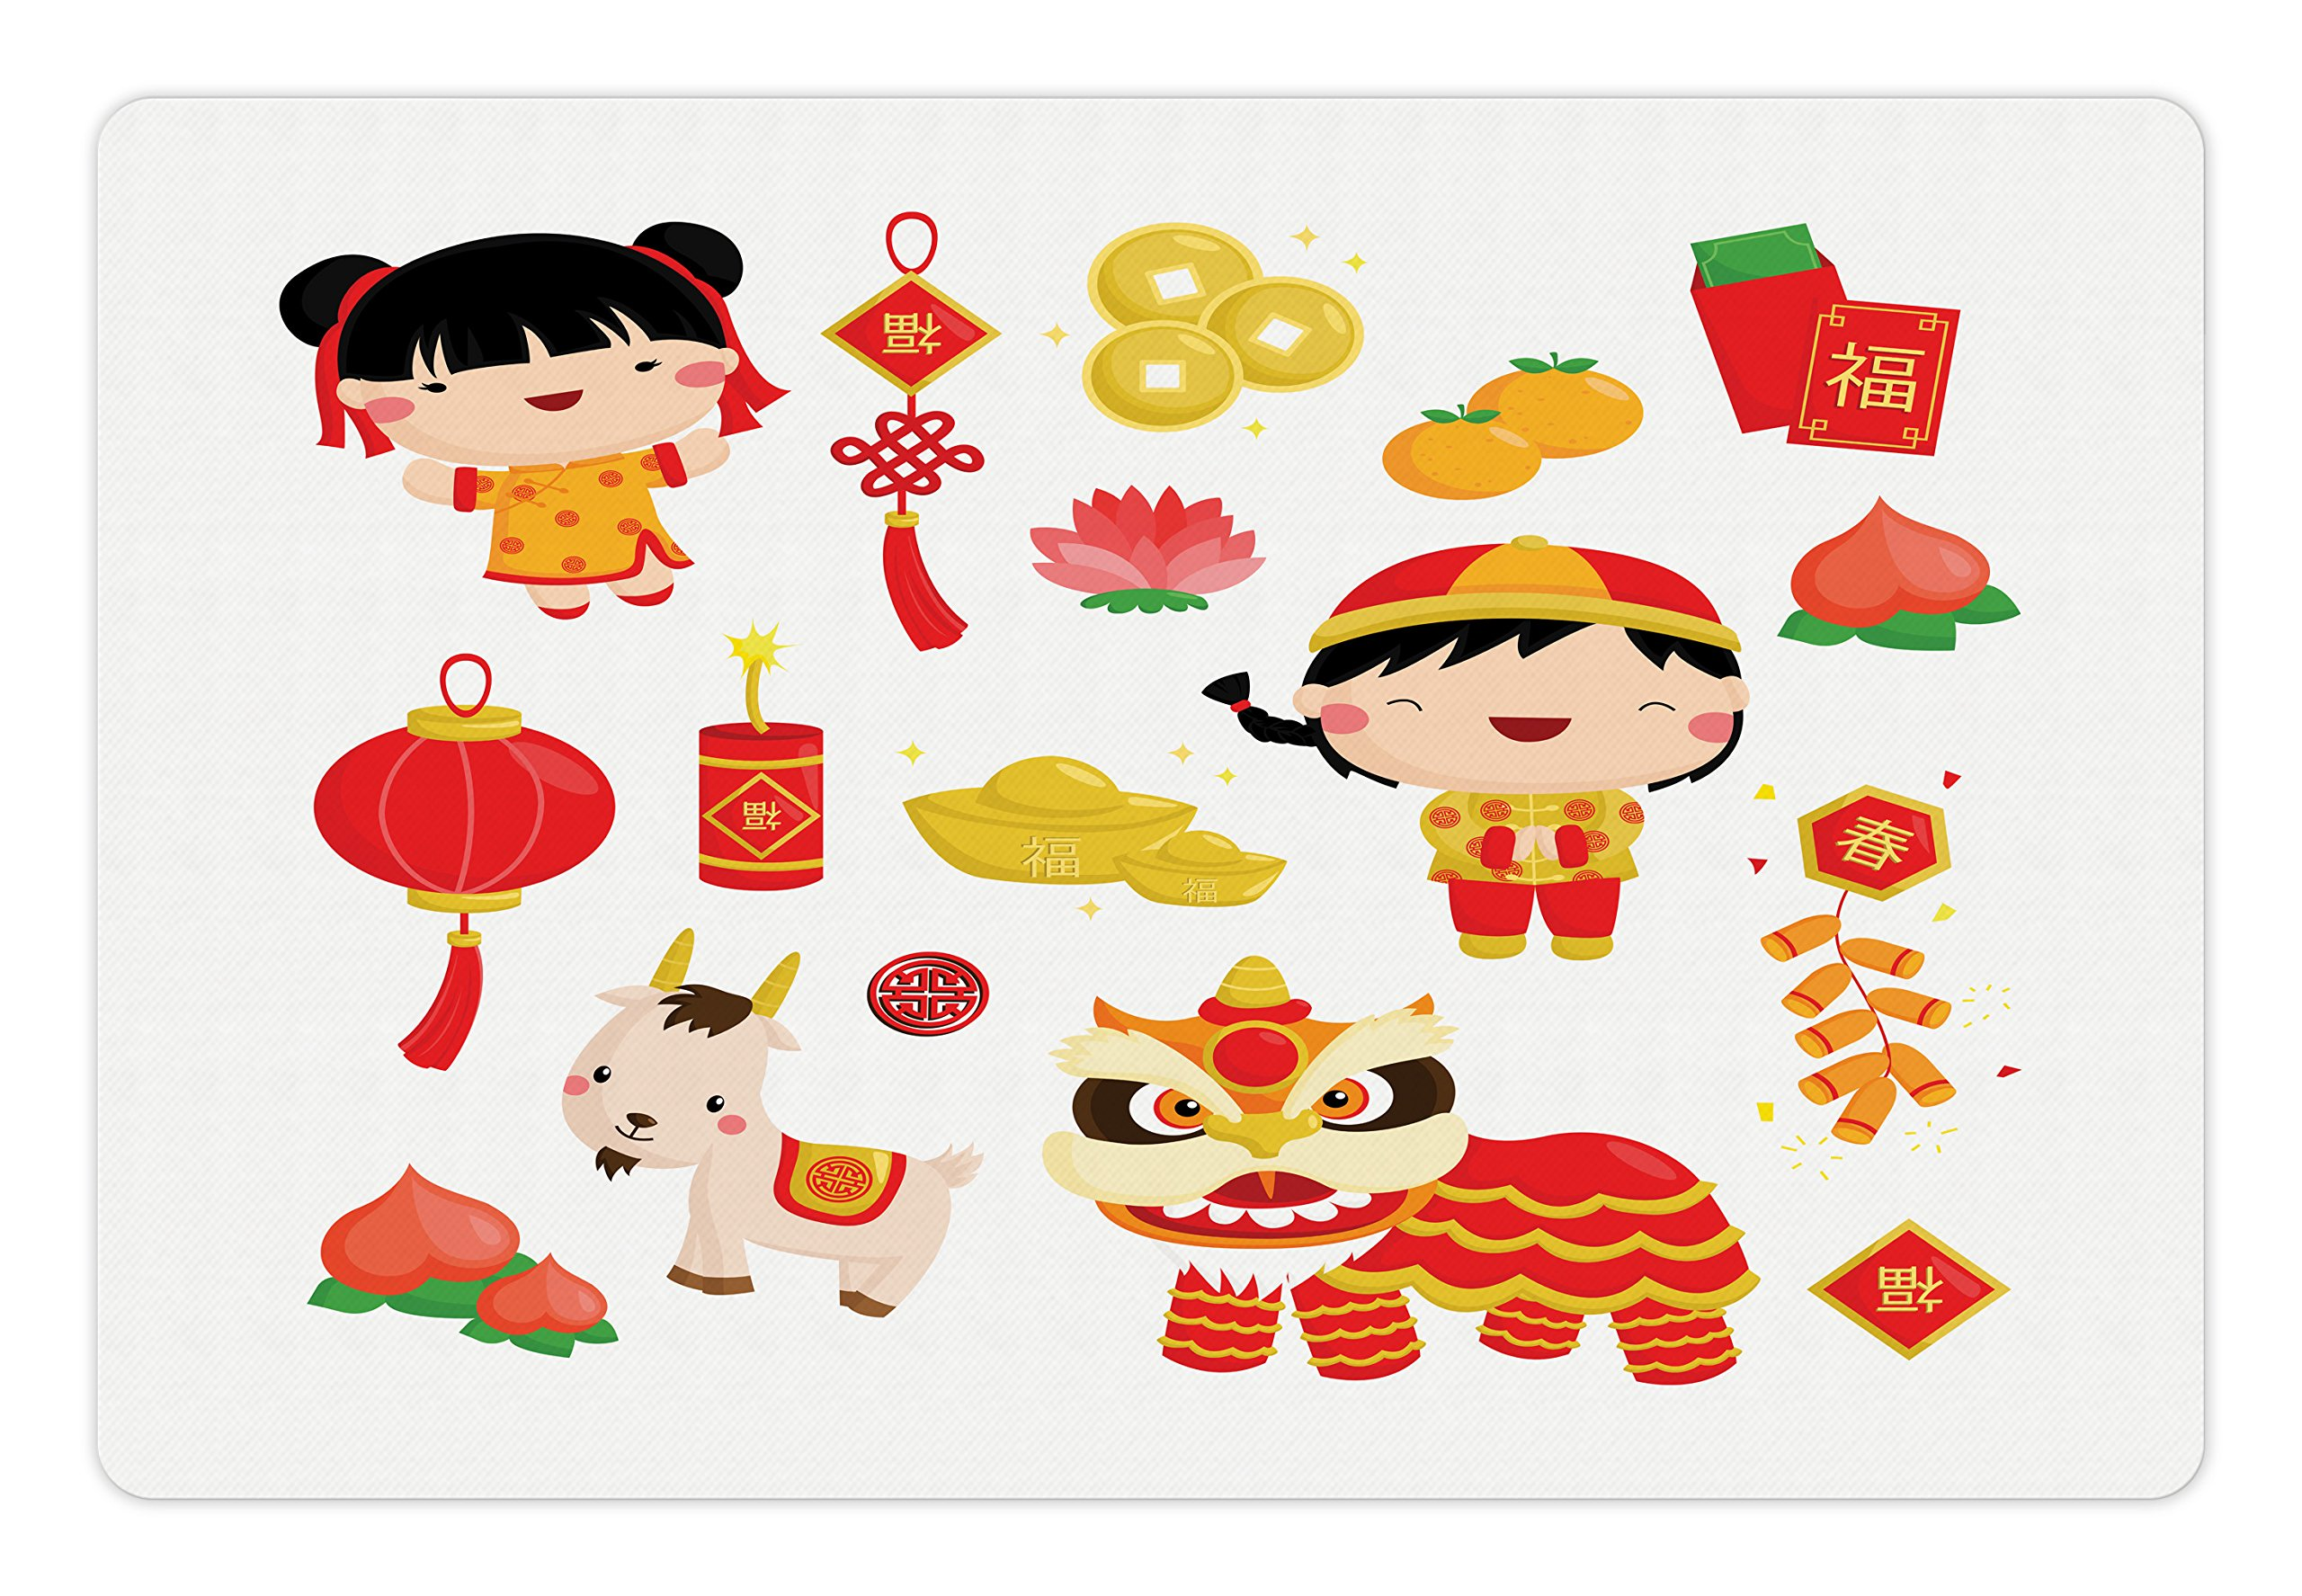 Ambesonne Chinese New Year Pet Mat for Food and Water, Joyful Holiday Themed Pattern with Children Animals and Cultural Elements, Rectangle Non-Slip Rubber Mat for Dogs and Cats, Multicolor by Ambesonne (Image #1)